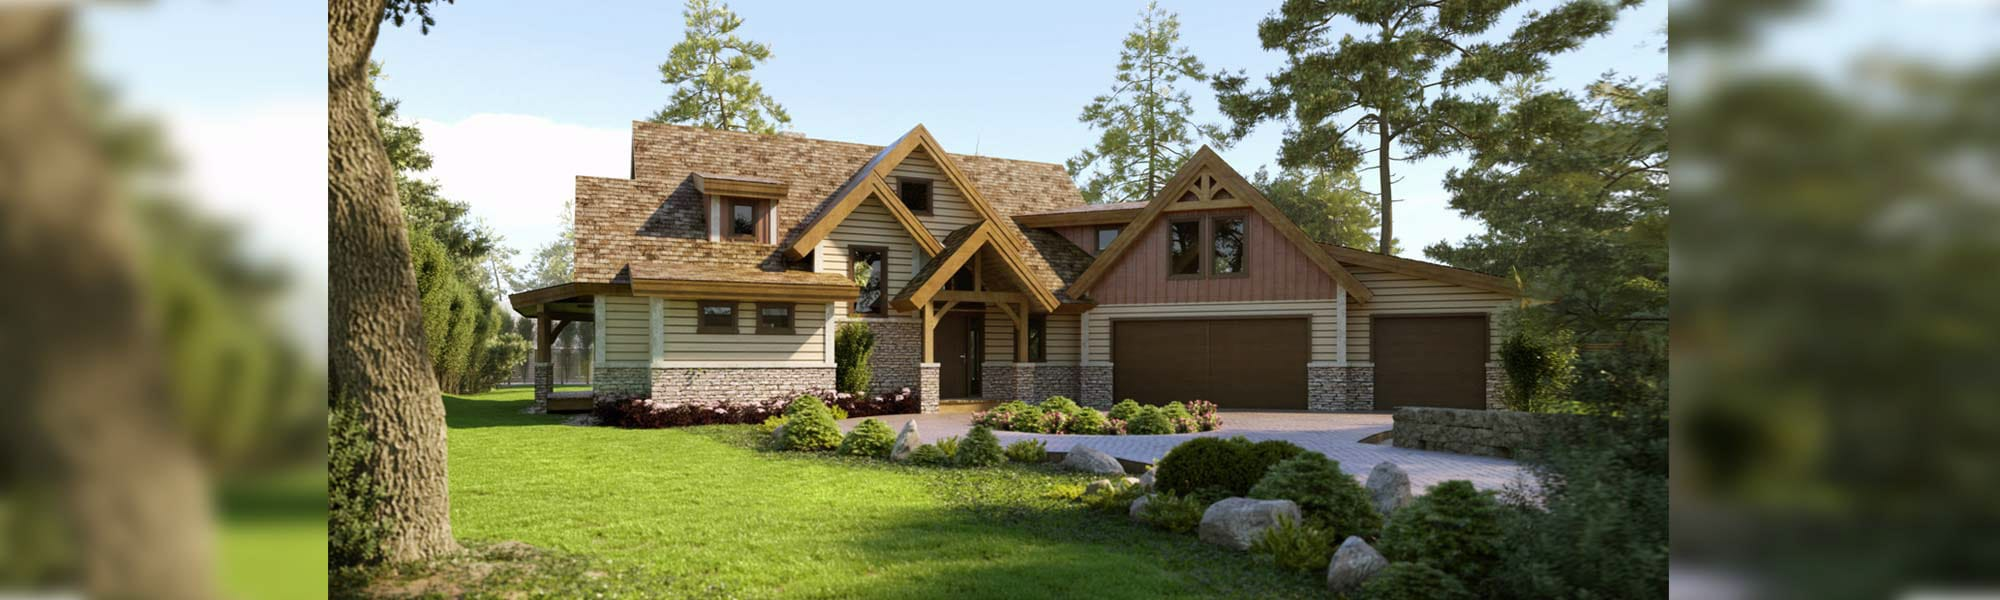 Sutton timber home floor plan